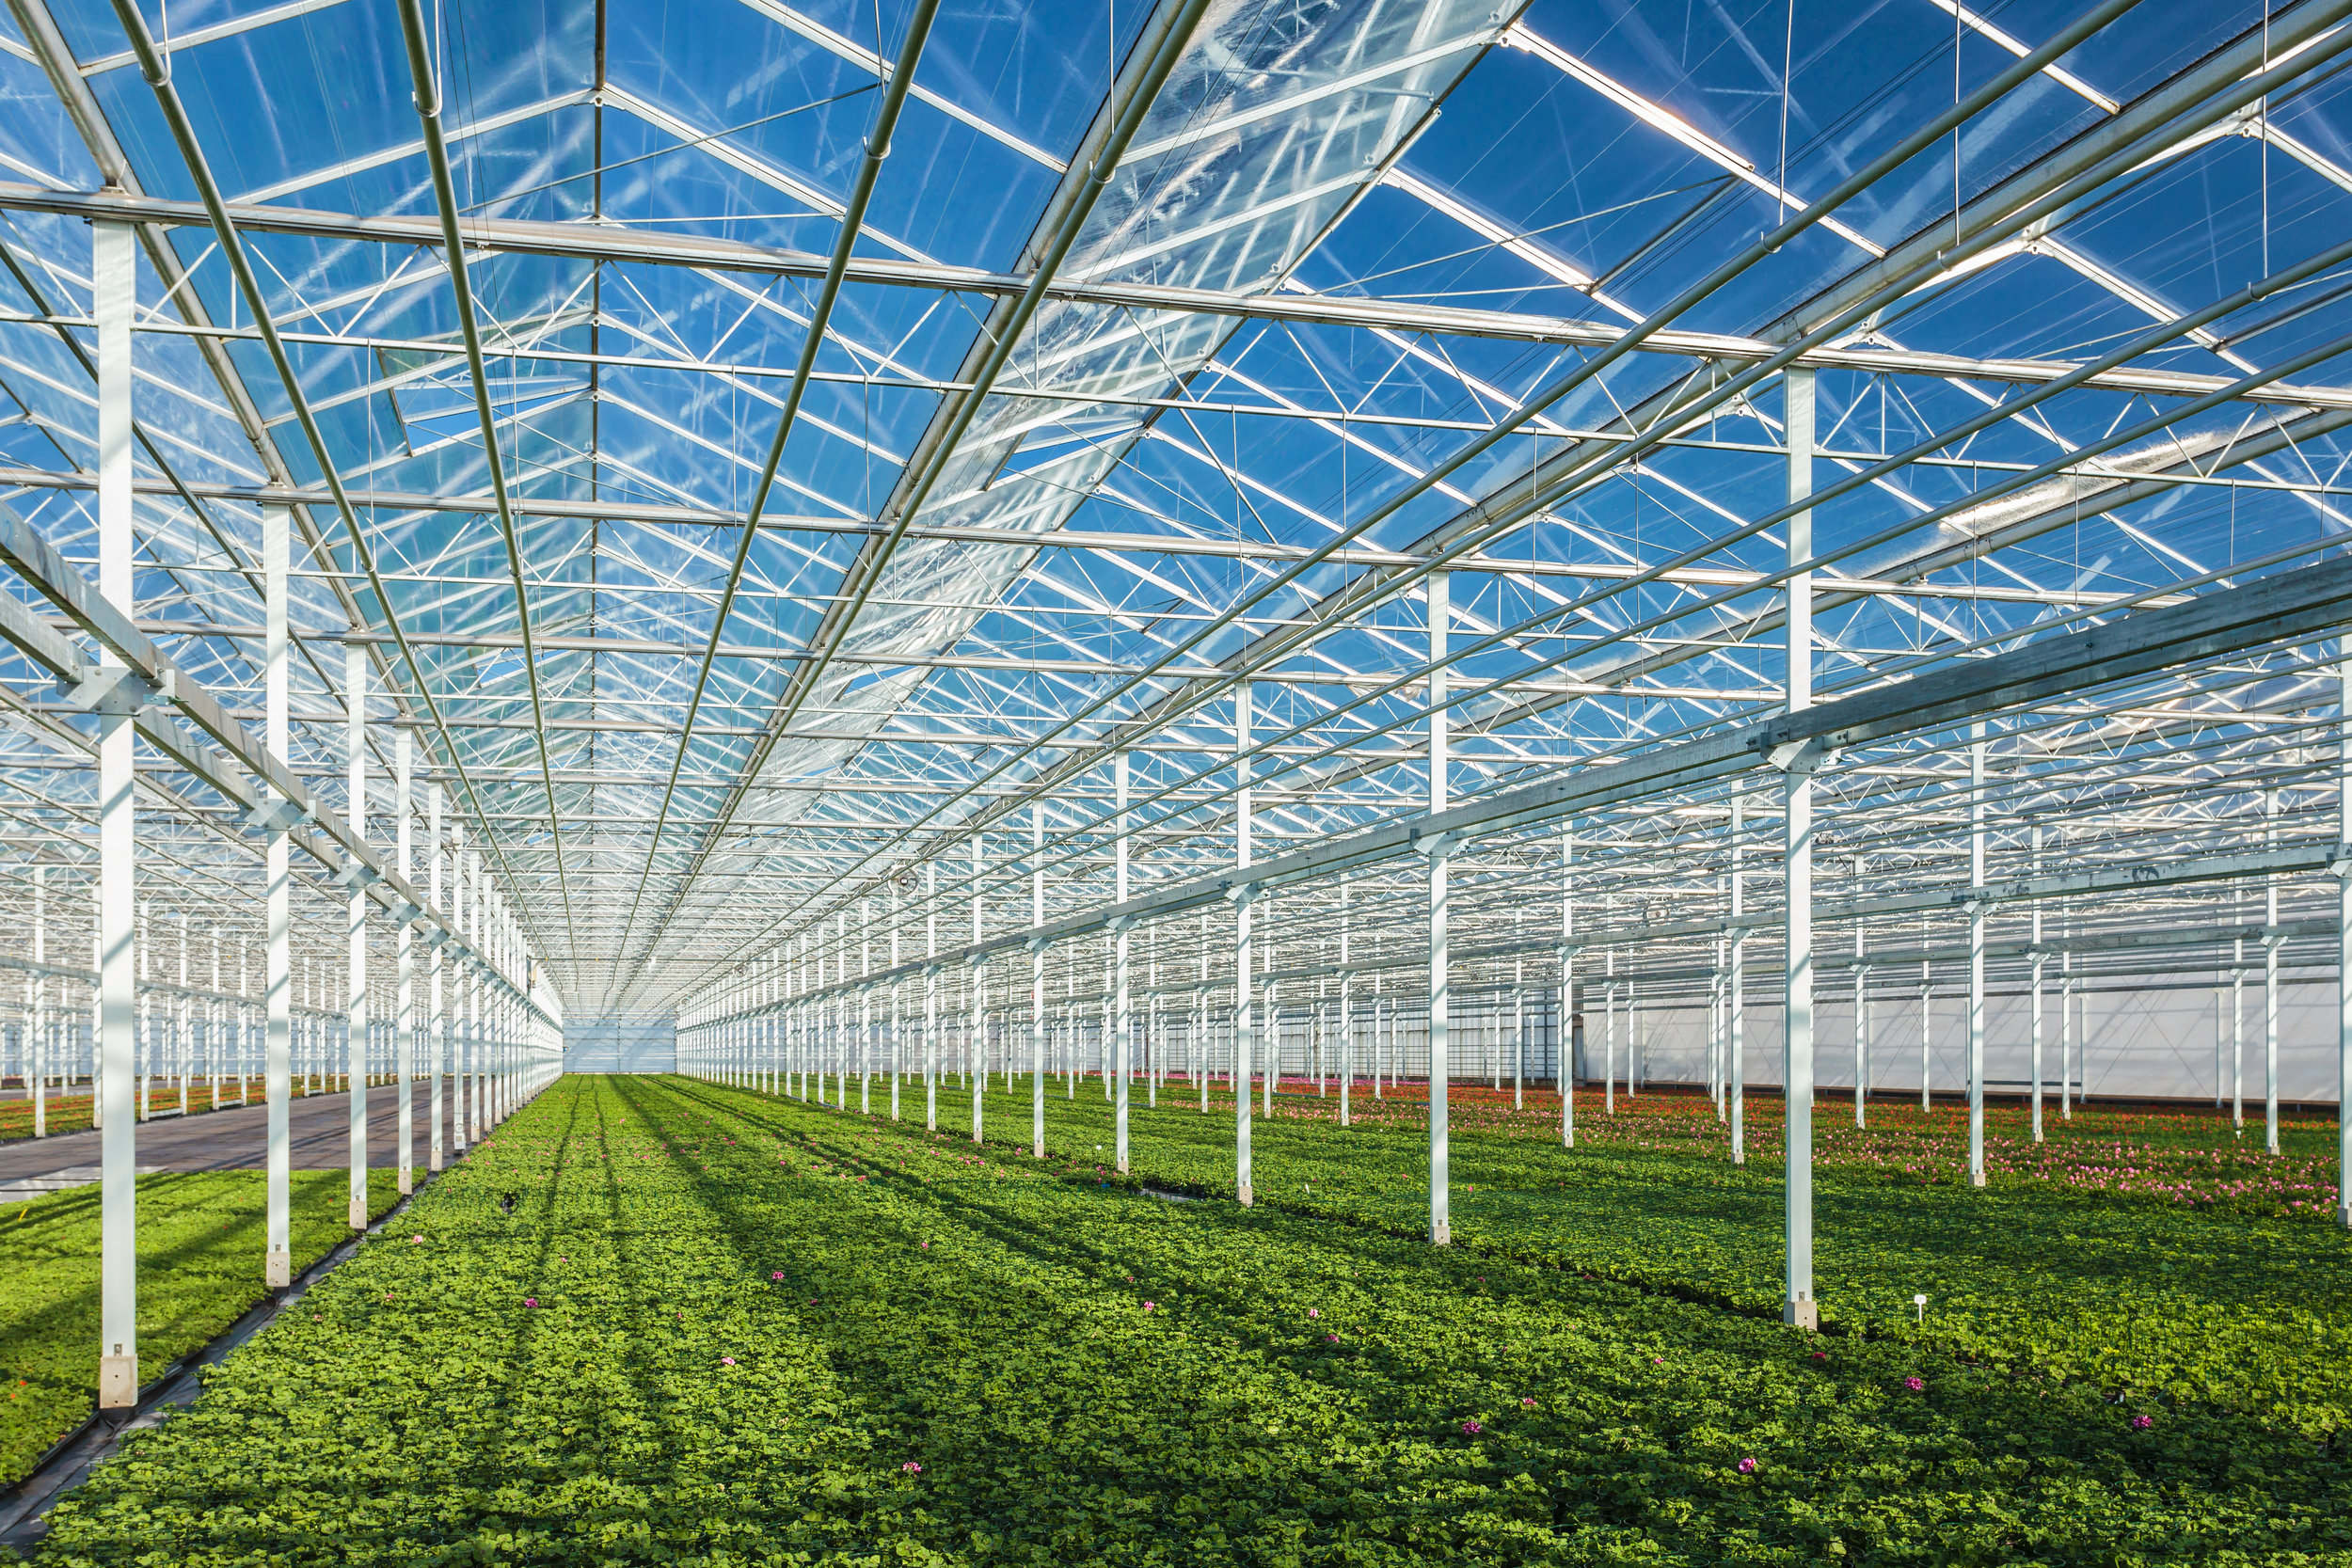 GREENHOUSES - We partner with manufacturers to design and install top-quality greenhouses from the ground up. Our scalable,versatile designs can be tailored to fit virtually any sizing functionality you need. These commercial strength structures are efficient, reliable, and professional so you can get the highest production out of your growing environment.